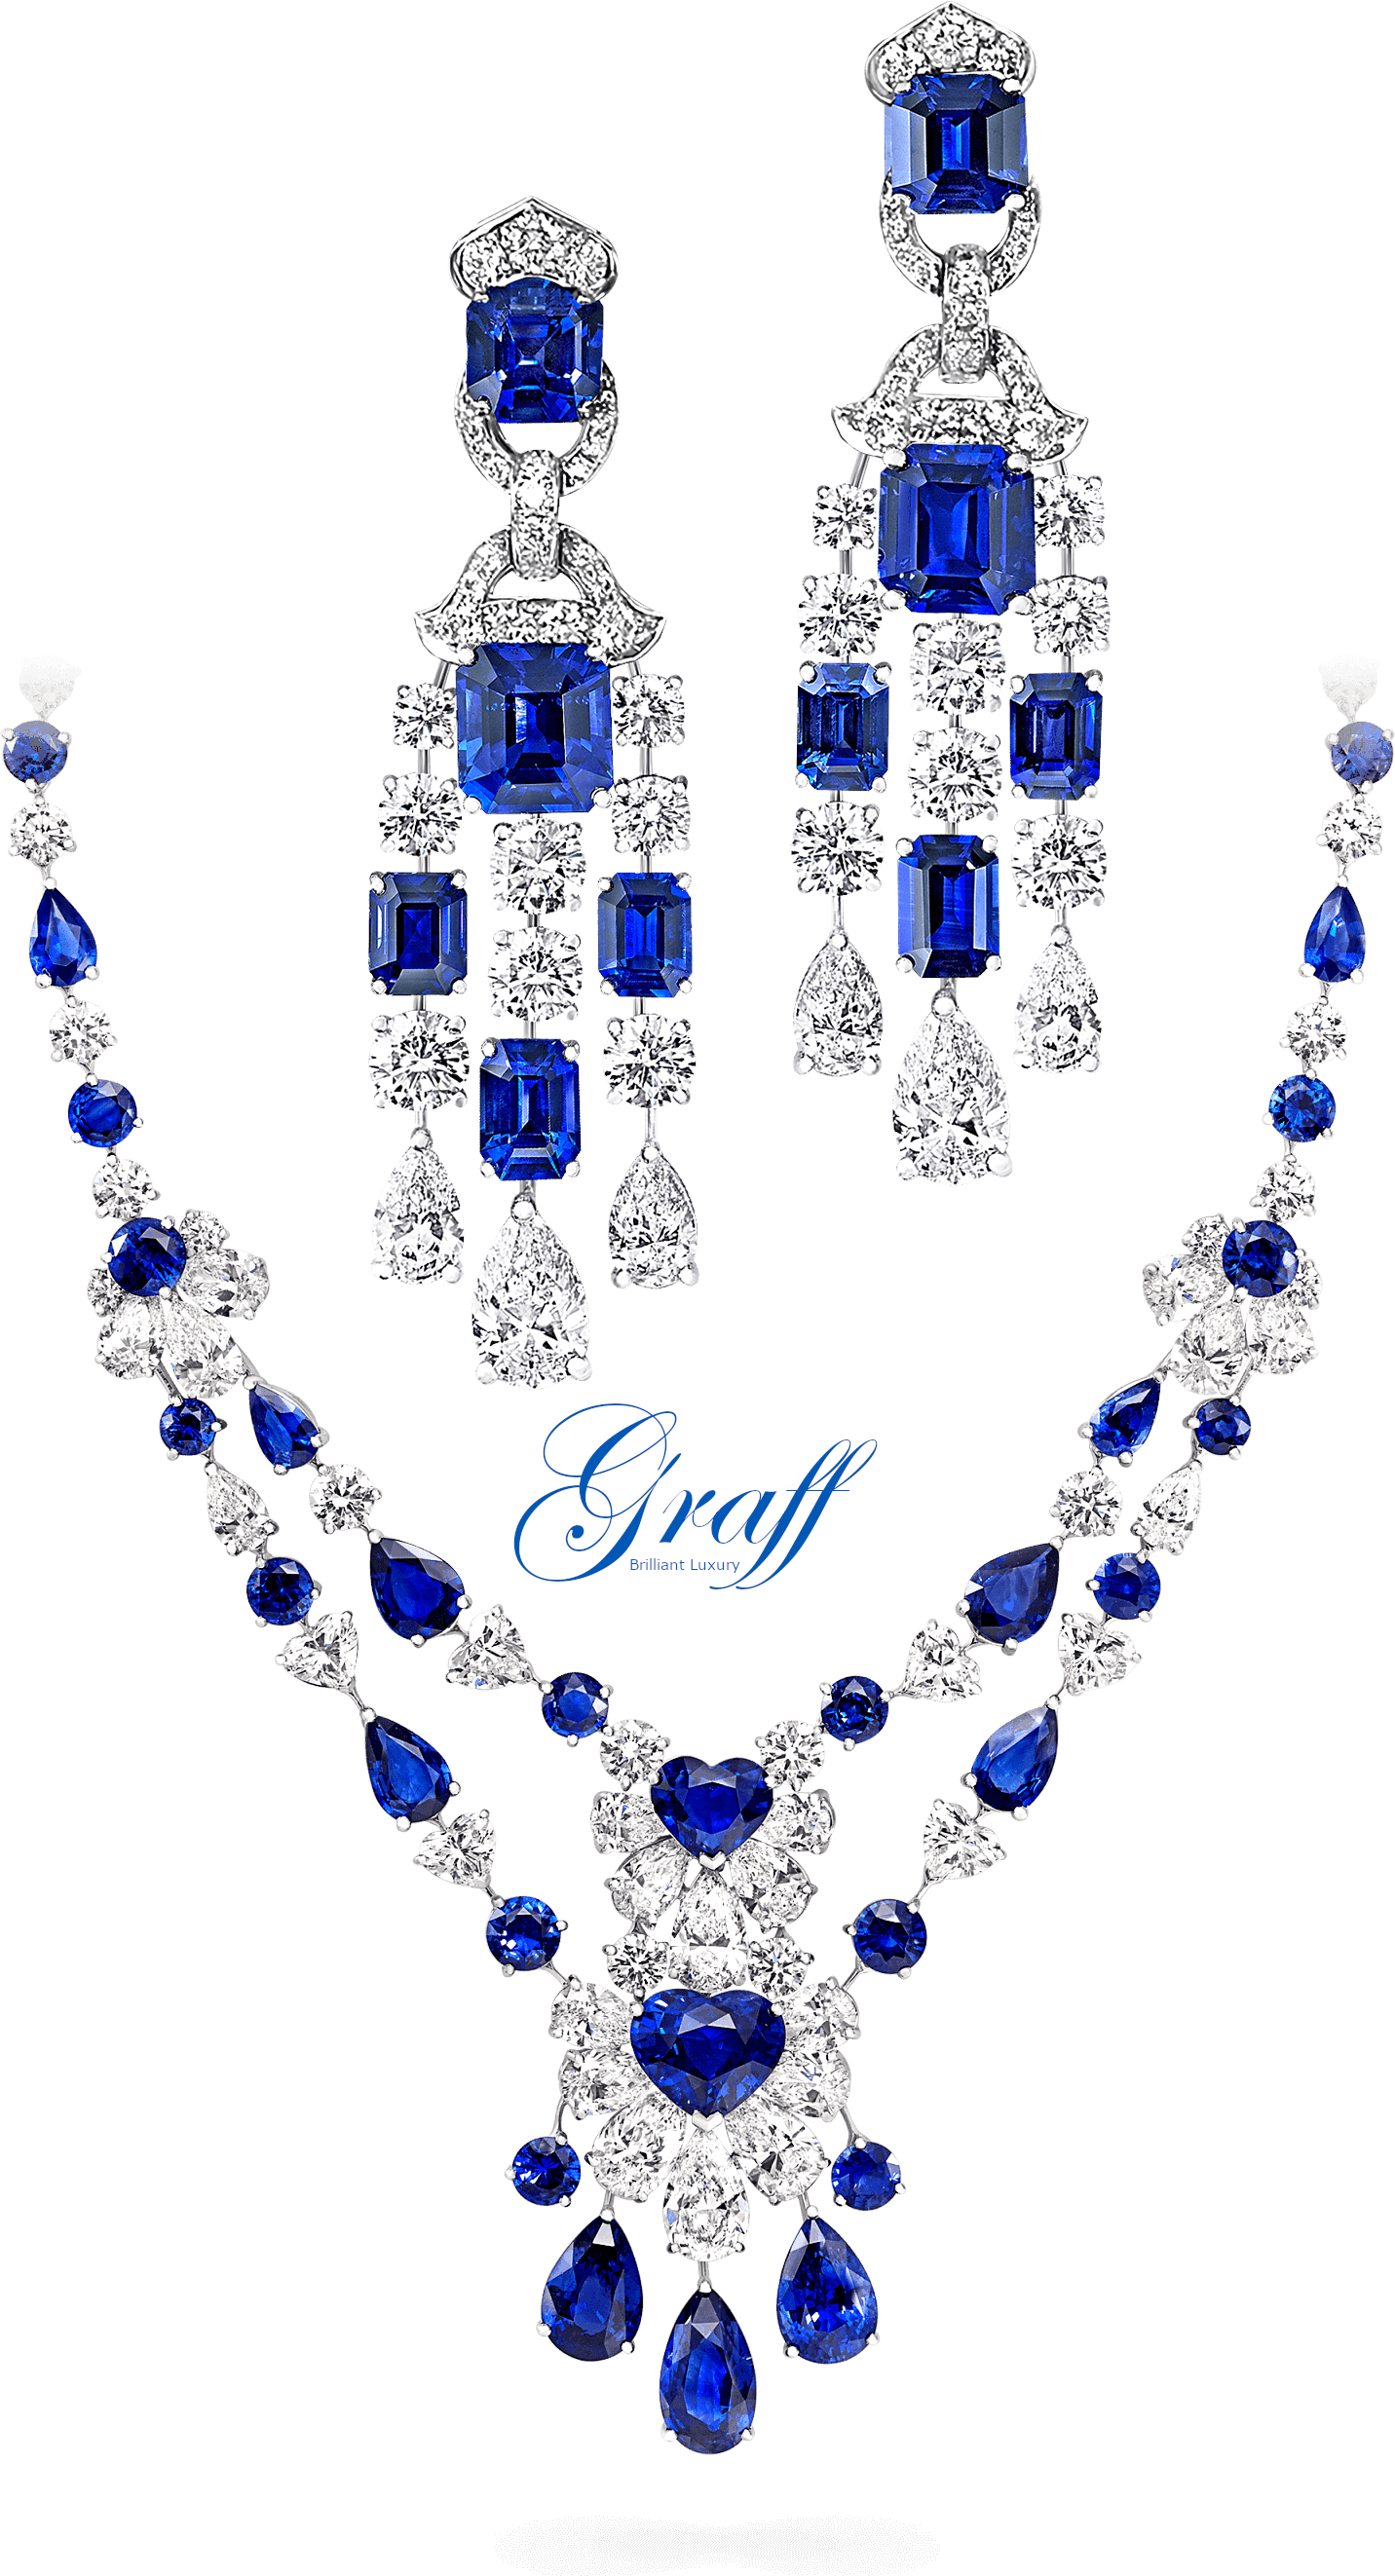 Graff sapphires and diamond necklace and earrings